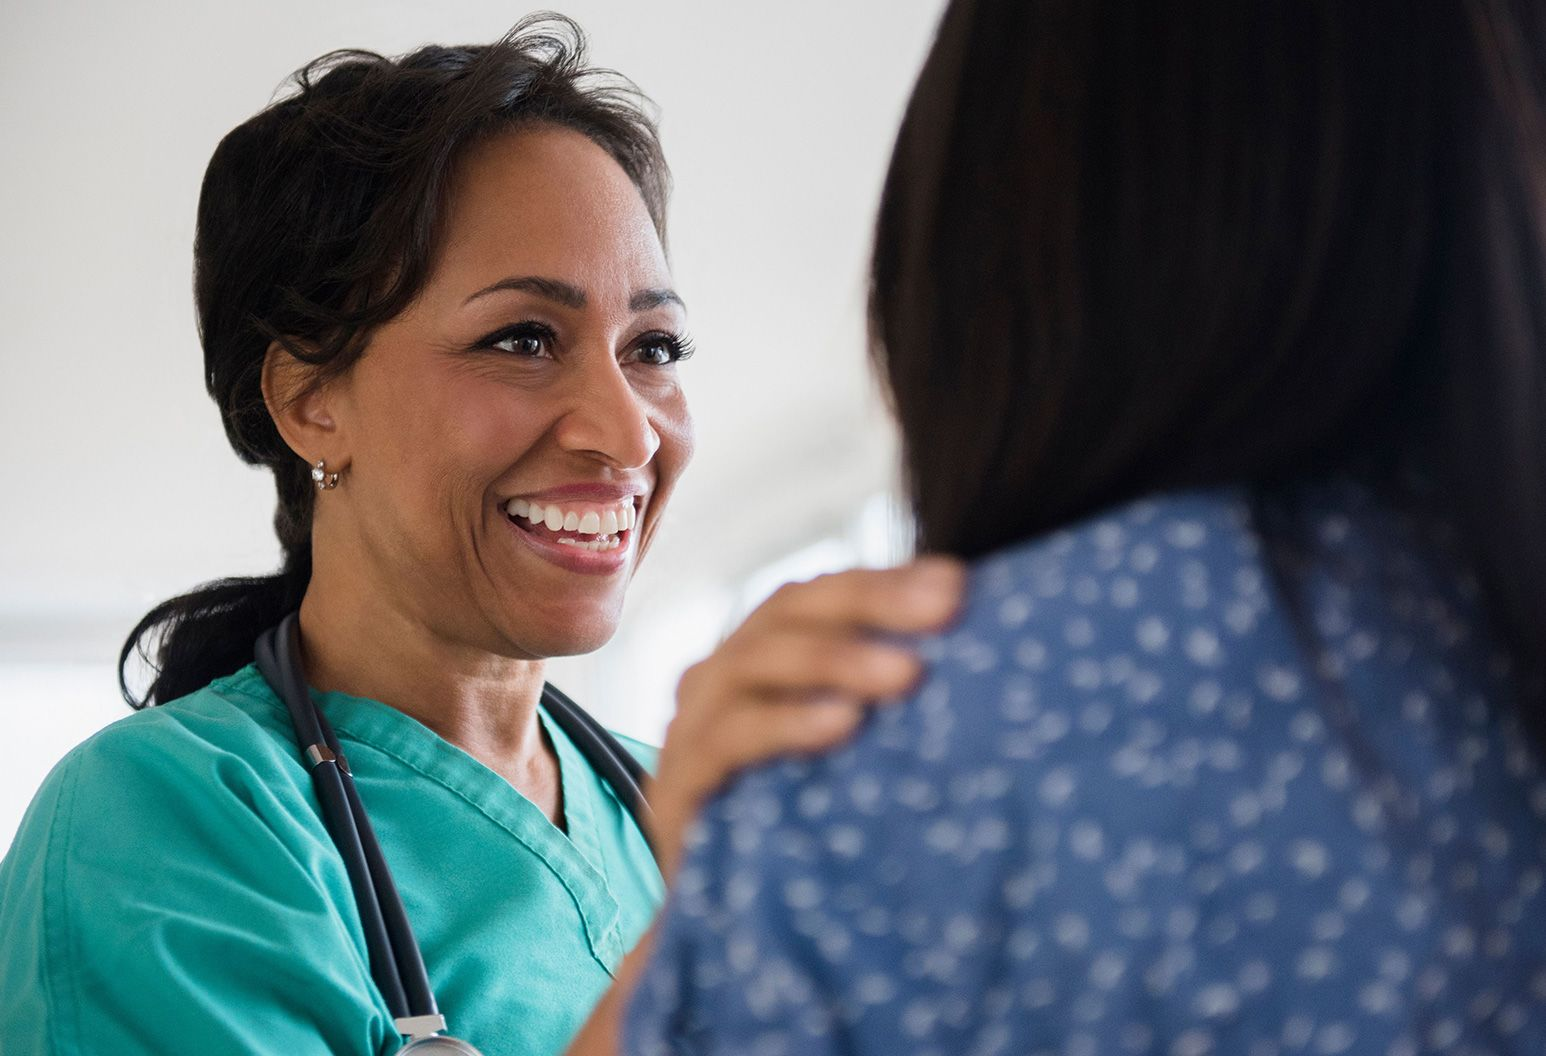 A doctor smiling while placing her hand on a patients shoulder.